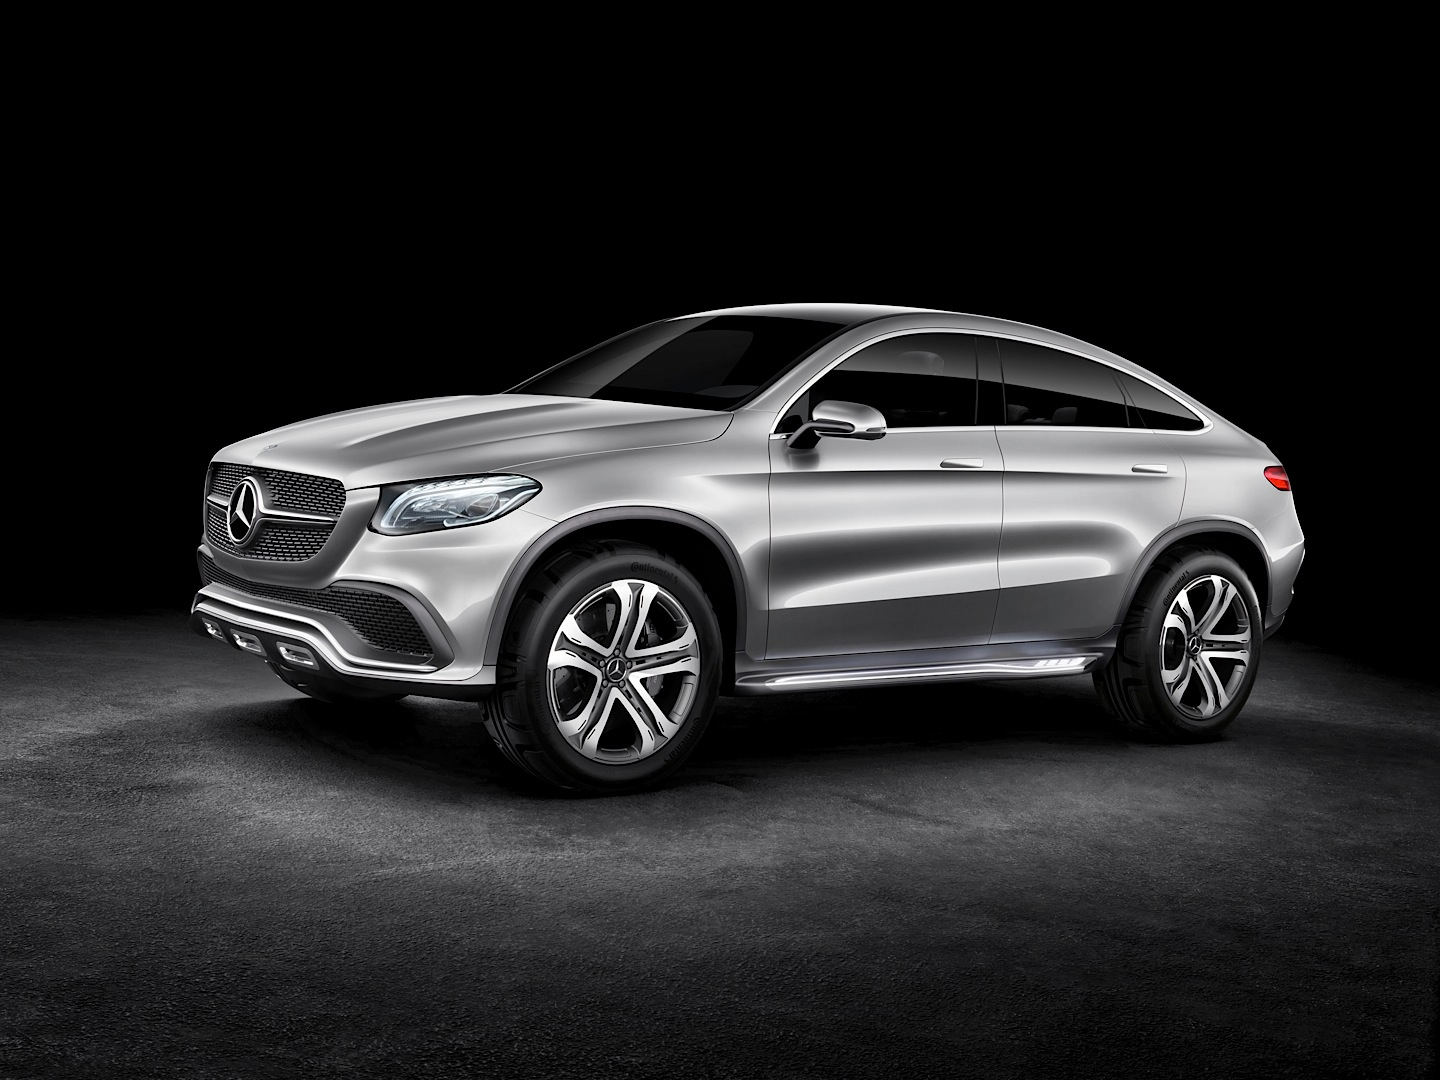 Mercedes Benz Concept Coupe Suv Officially Revealed